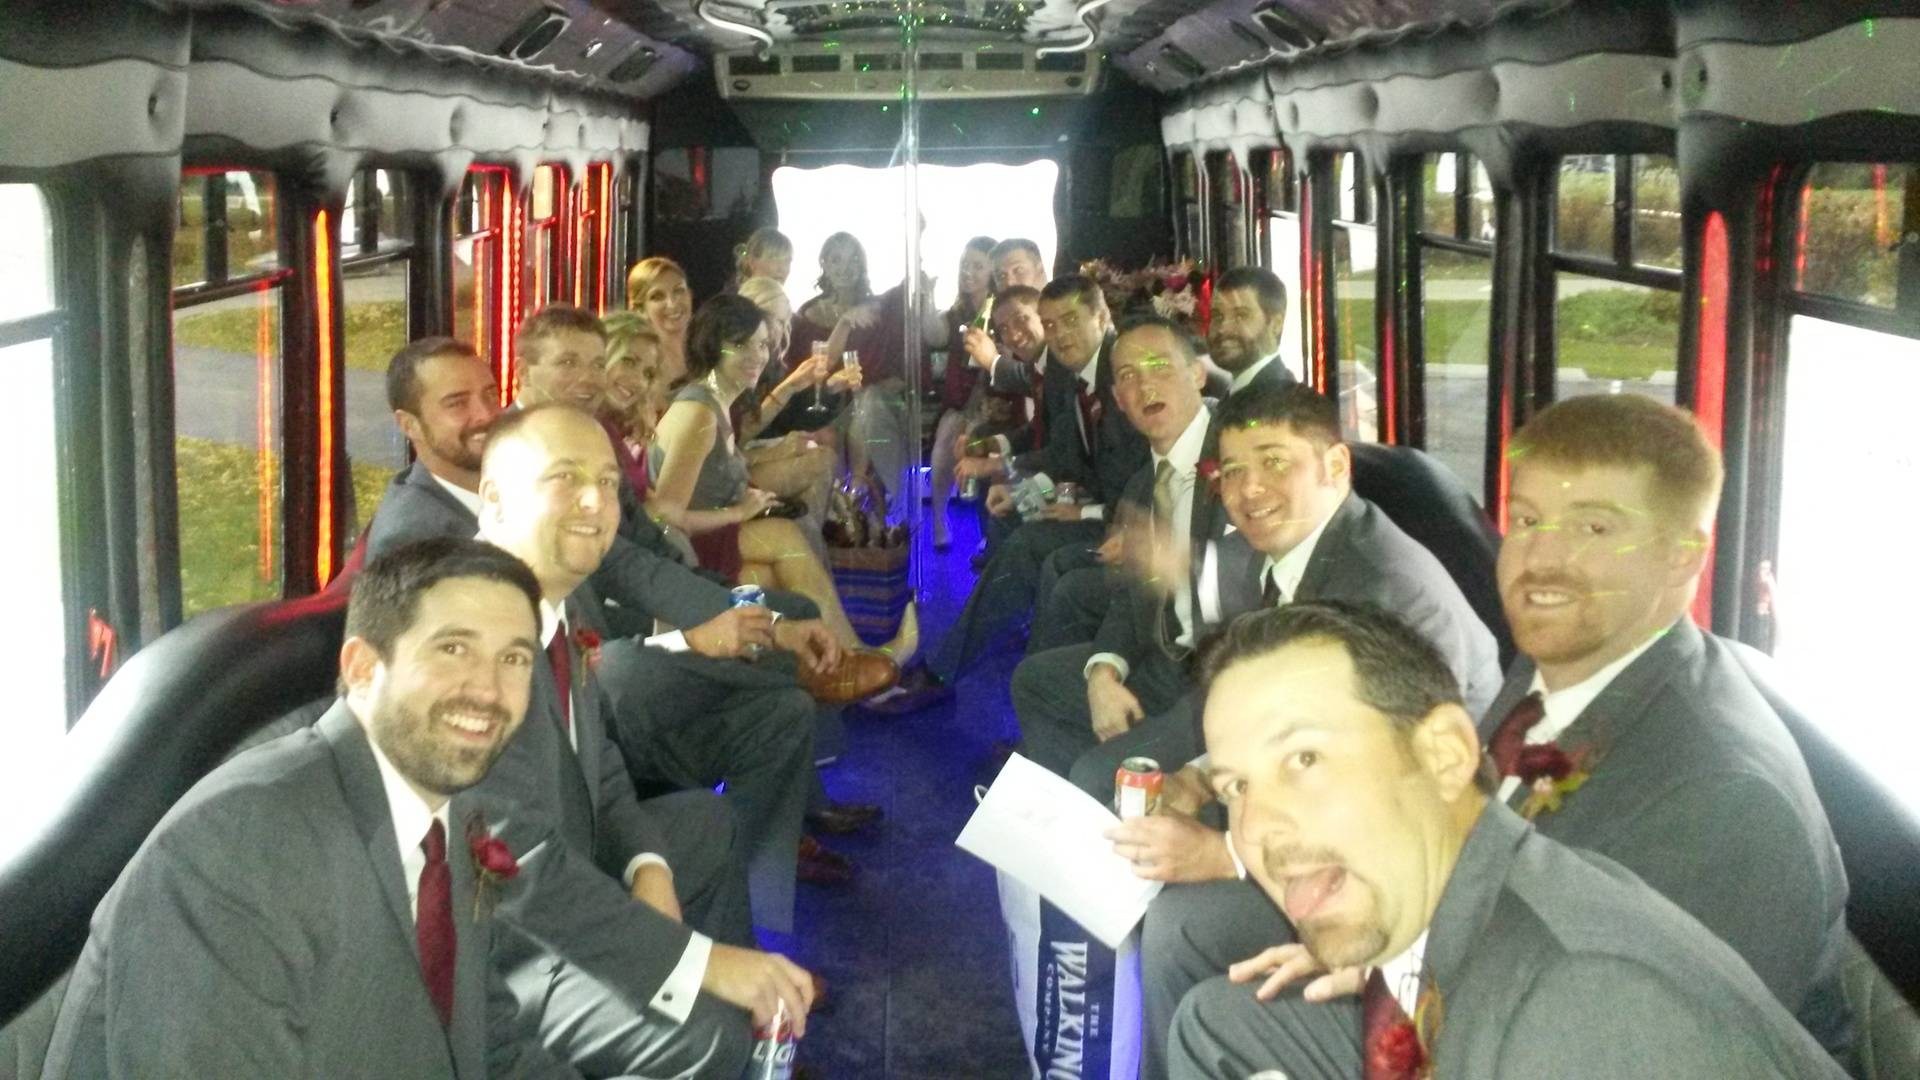 1st Wedding in the #7 Limo BUs